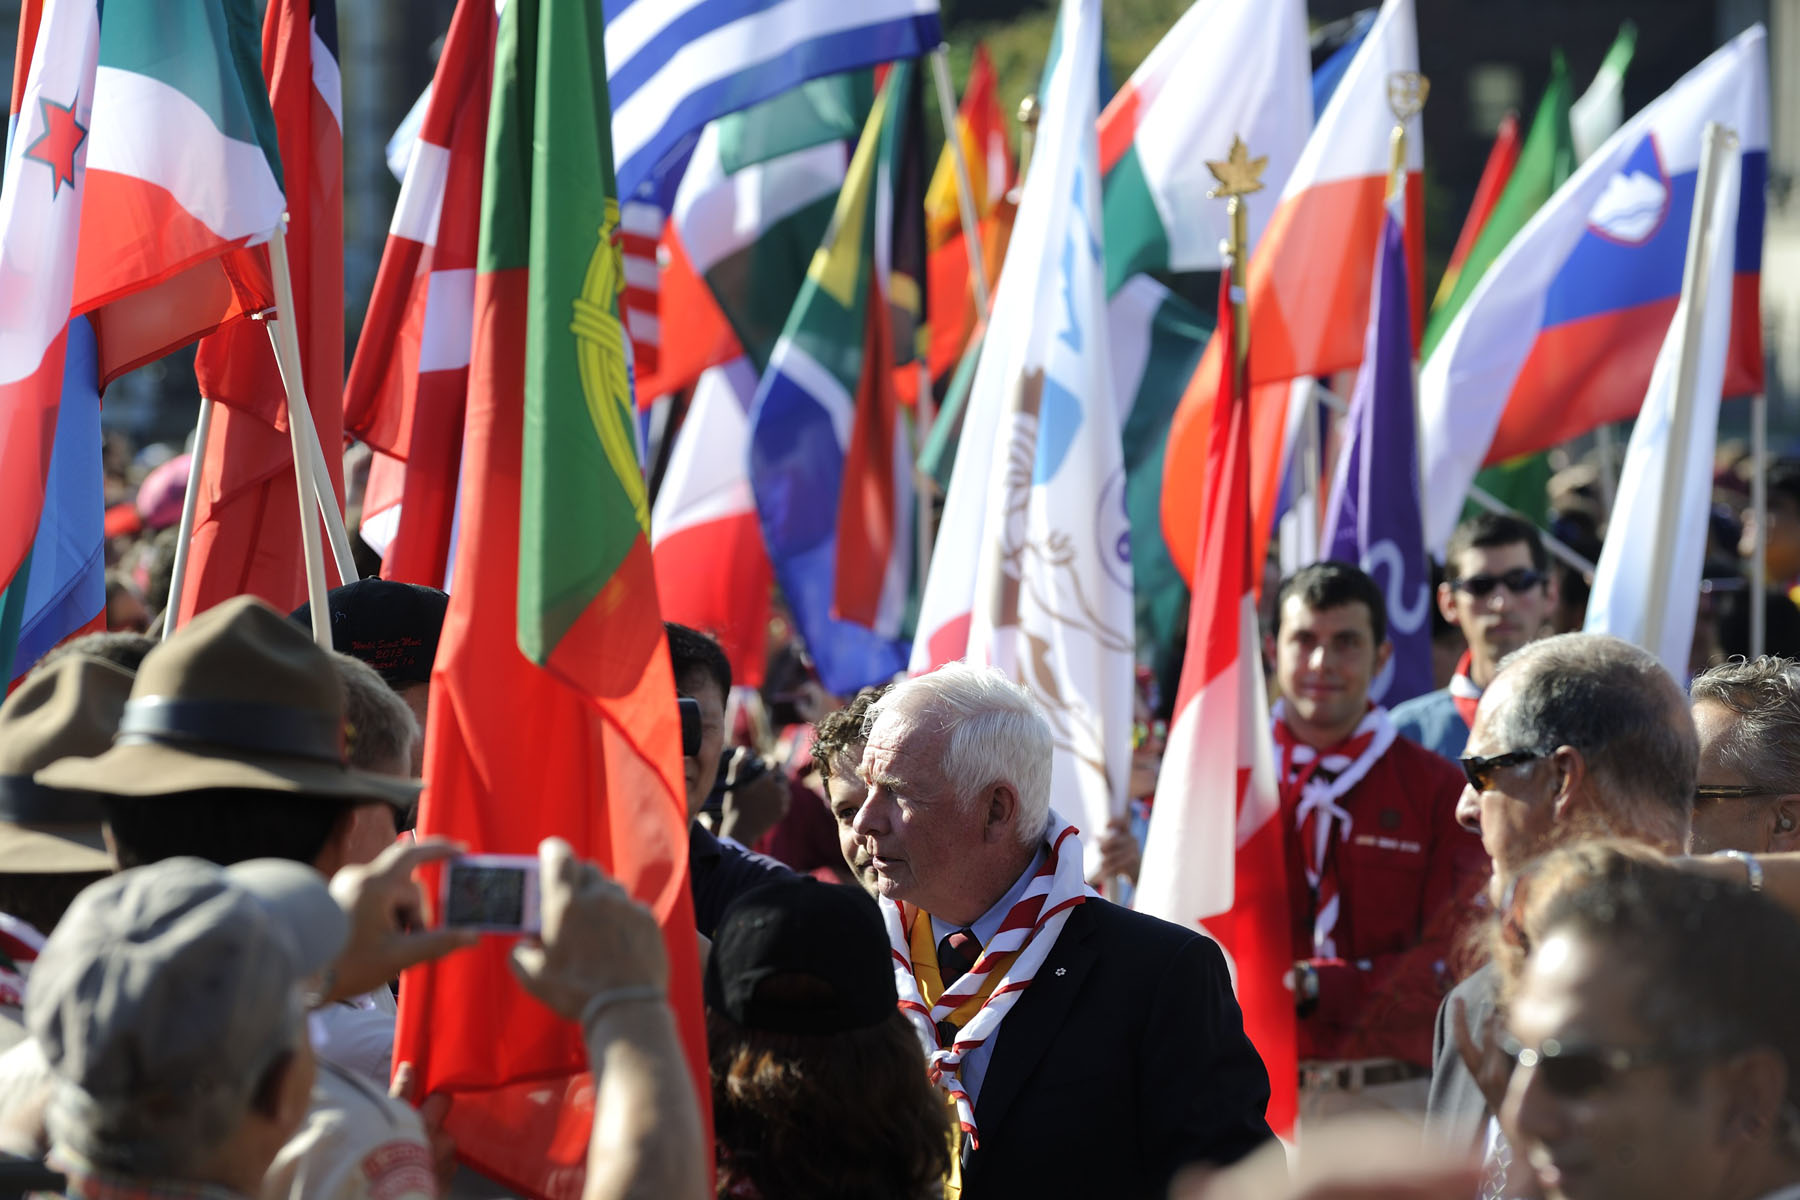 The Governor General was greeted by flags from around the world upon his arrival at Parliament Hill.